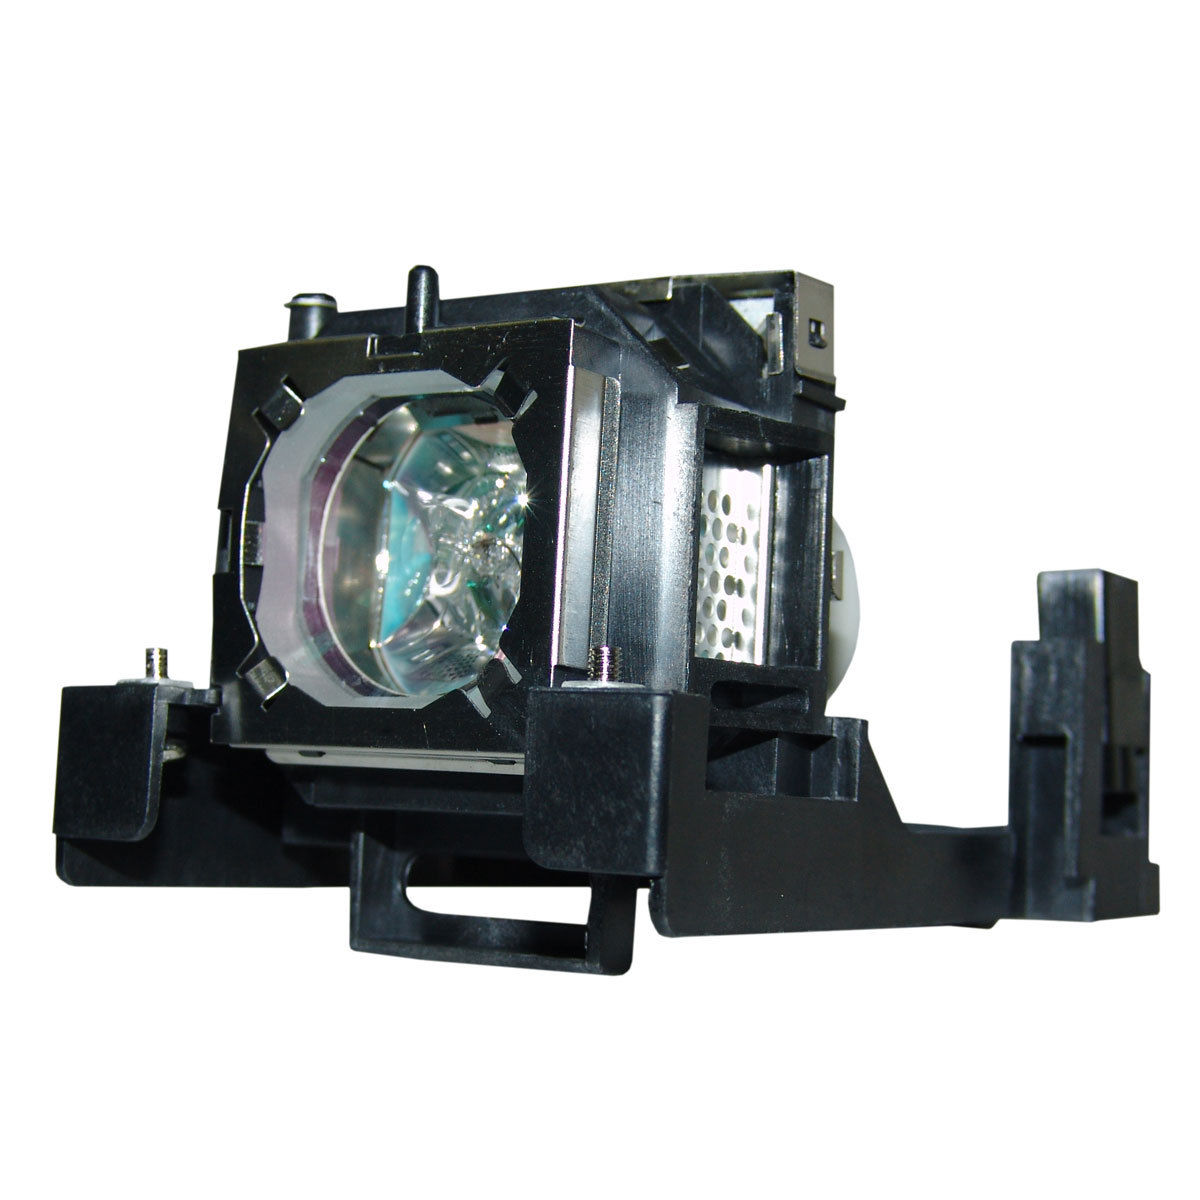 ET-LAT100 LAT100 For Panasonic PT-TW230 PT-TW230EA PT-TW230REA PT-TW230U PT-TW231RE PT-TW231RU Projector Lamp Bulb With housing projector lamp bulb et la701 etla701 for panasonic pt l711nt pt l711x pt l501e with housing